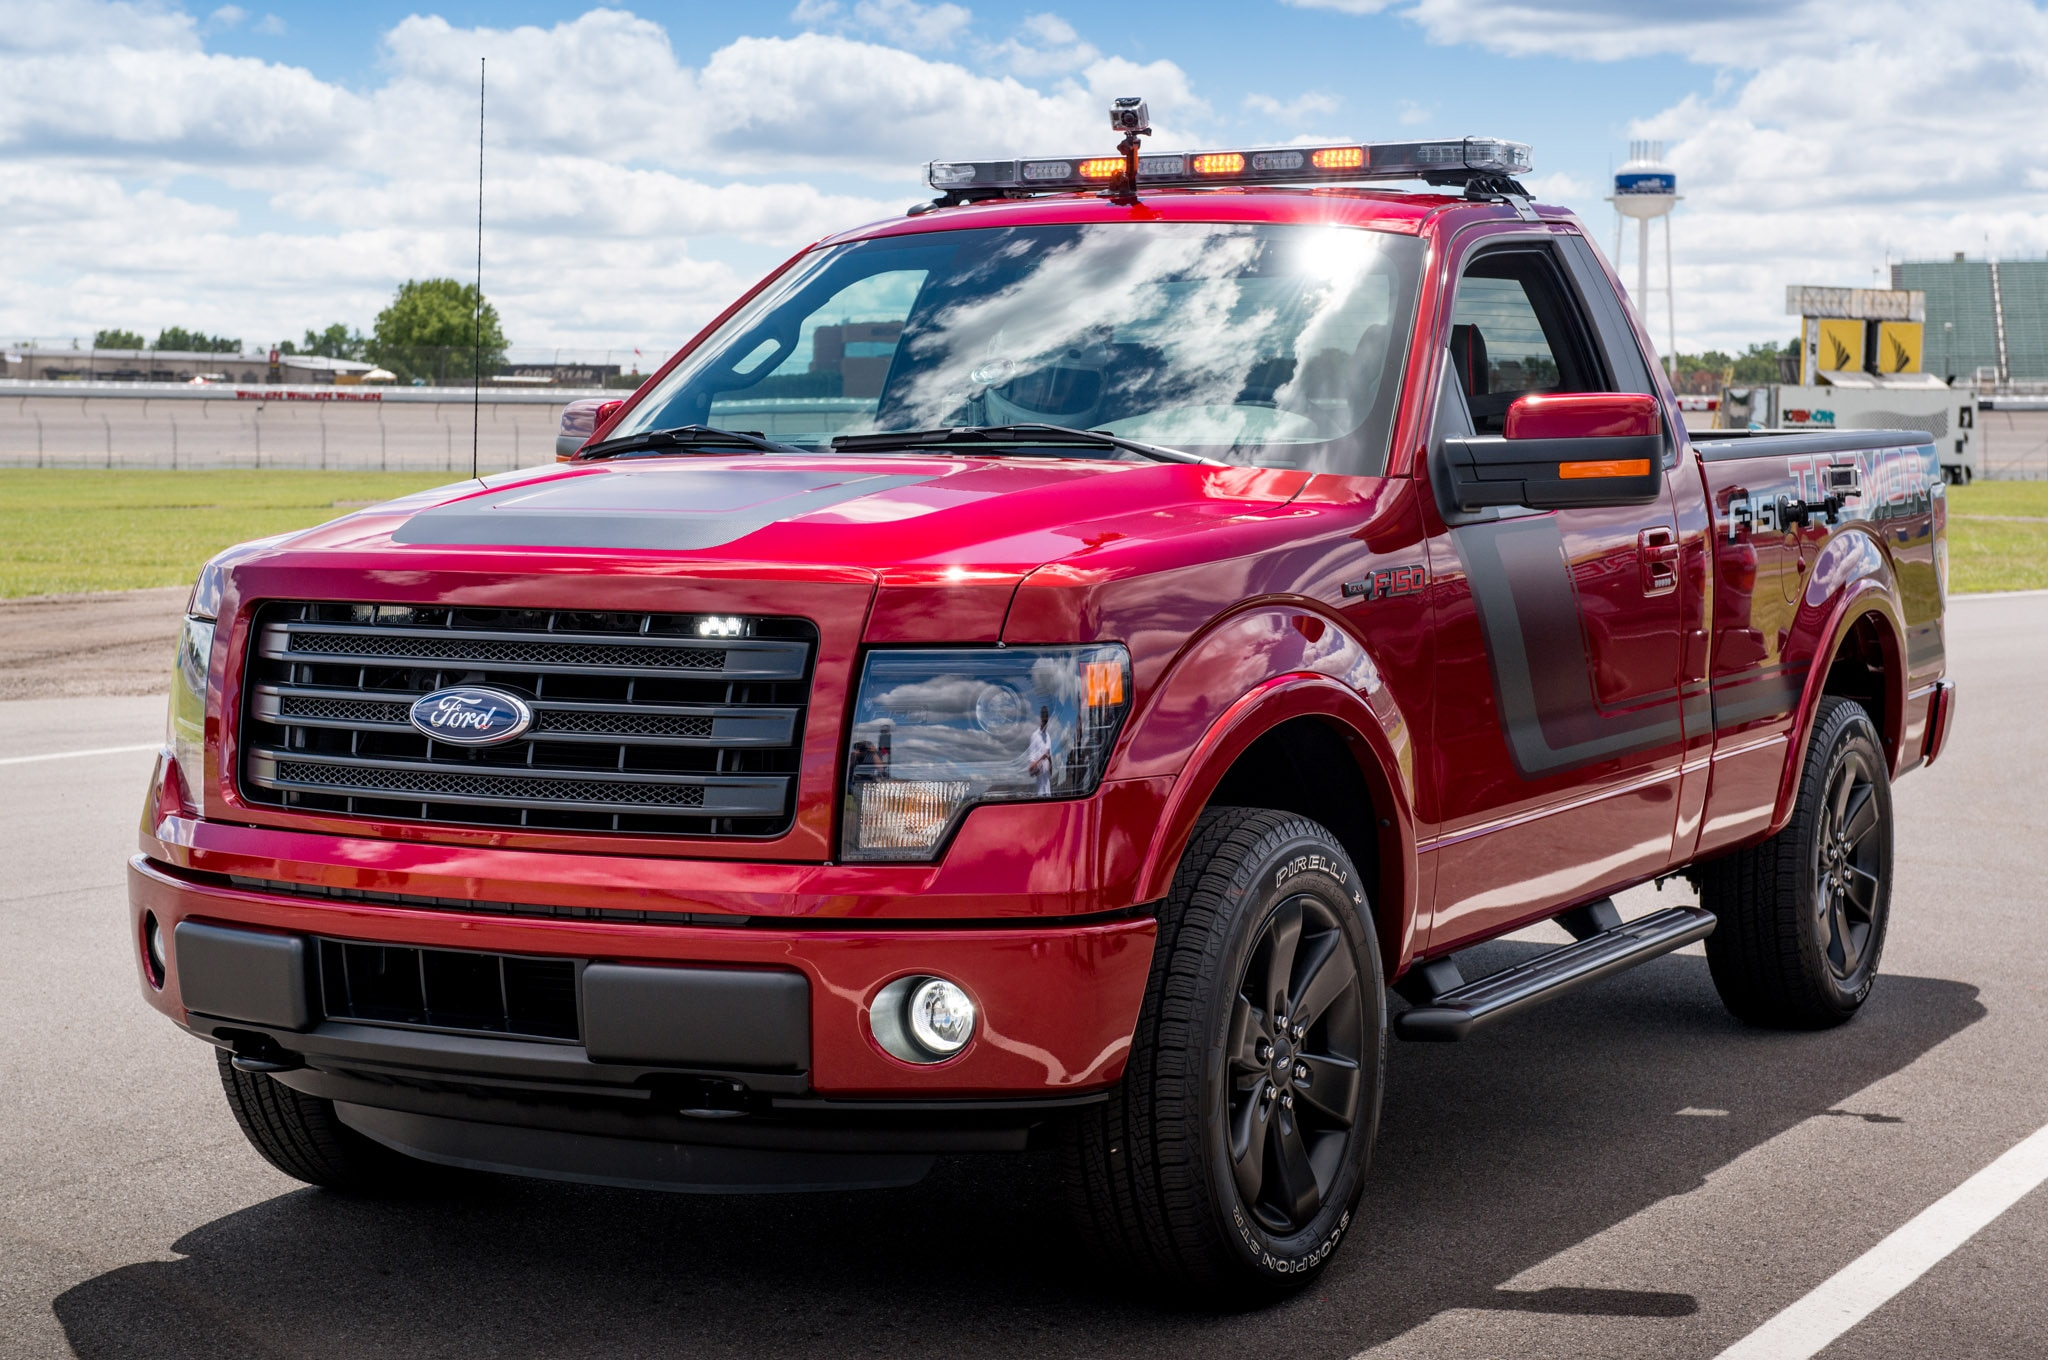 Pacing Michigan International Speedway in a 2014 Ford F 150 Tremor